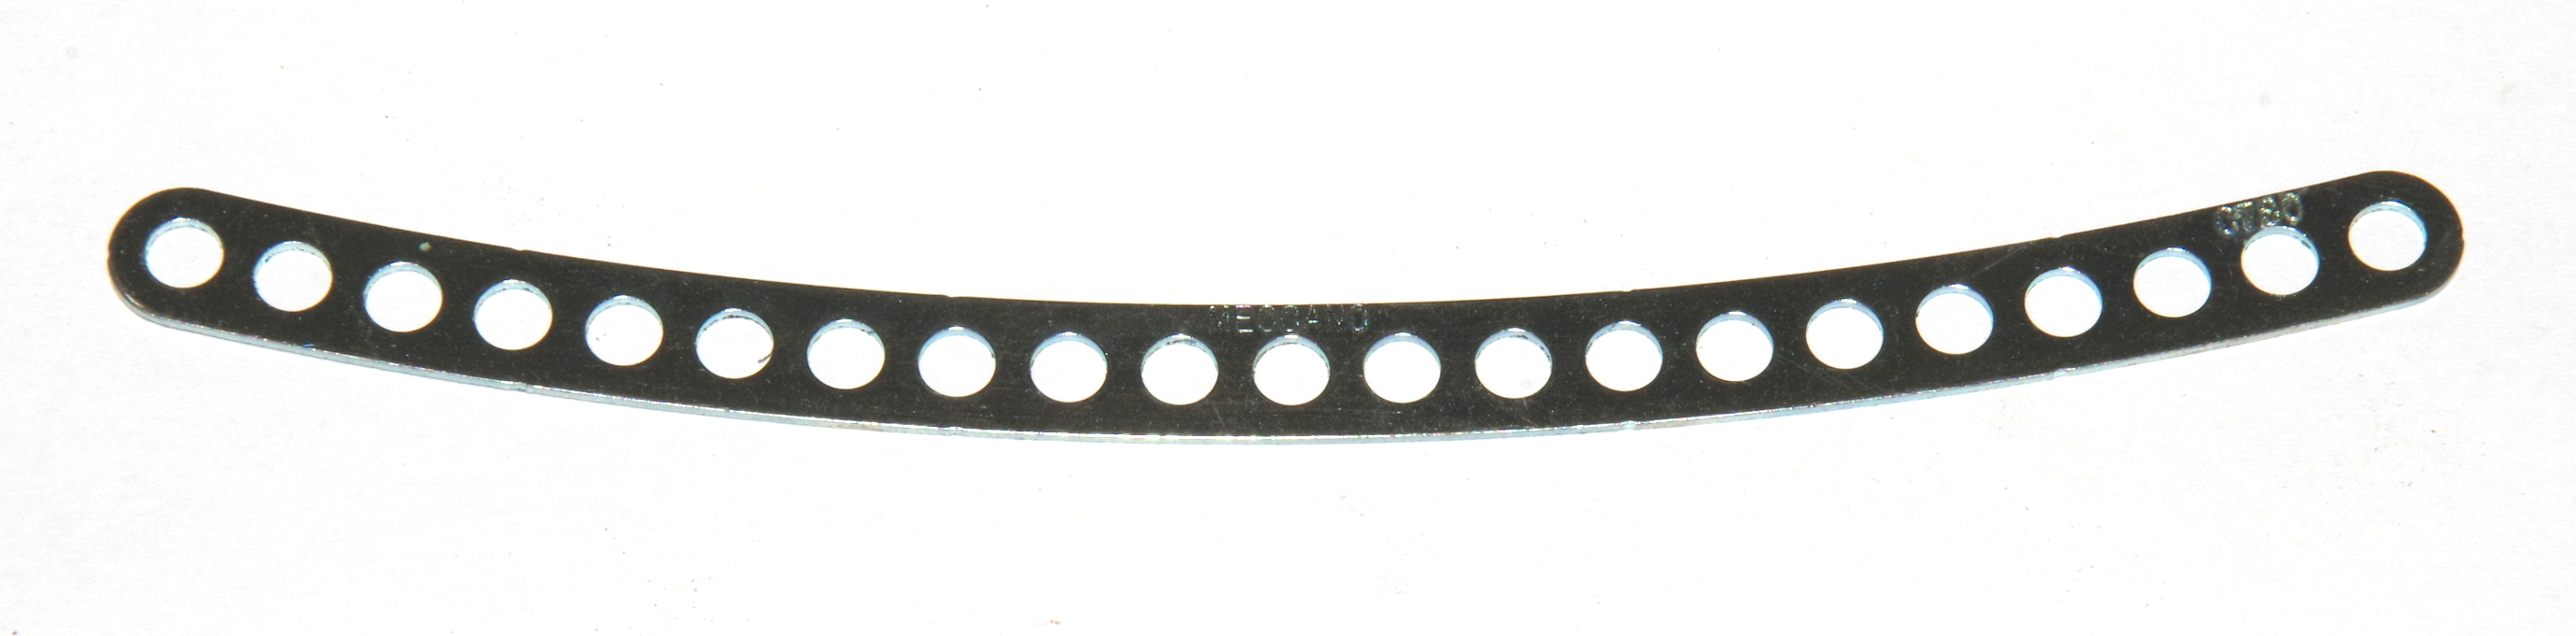 C780 Narrow Curved Strip 21 Hole Zinc Original